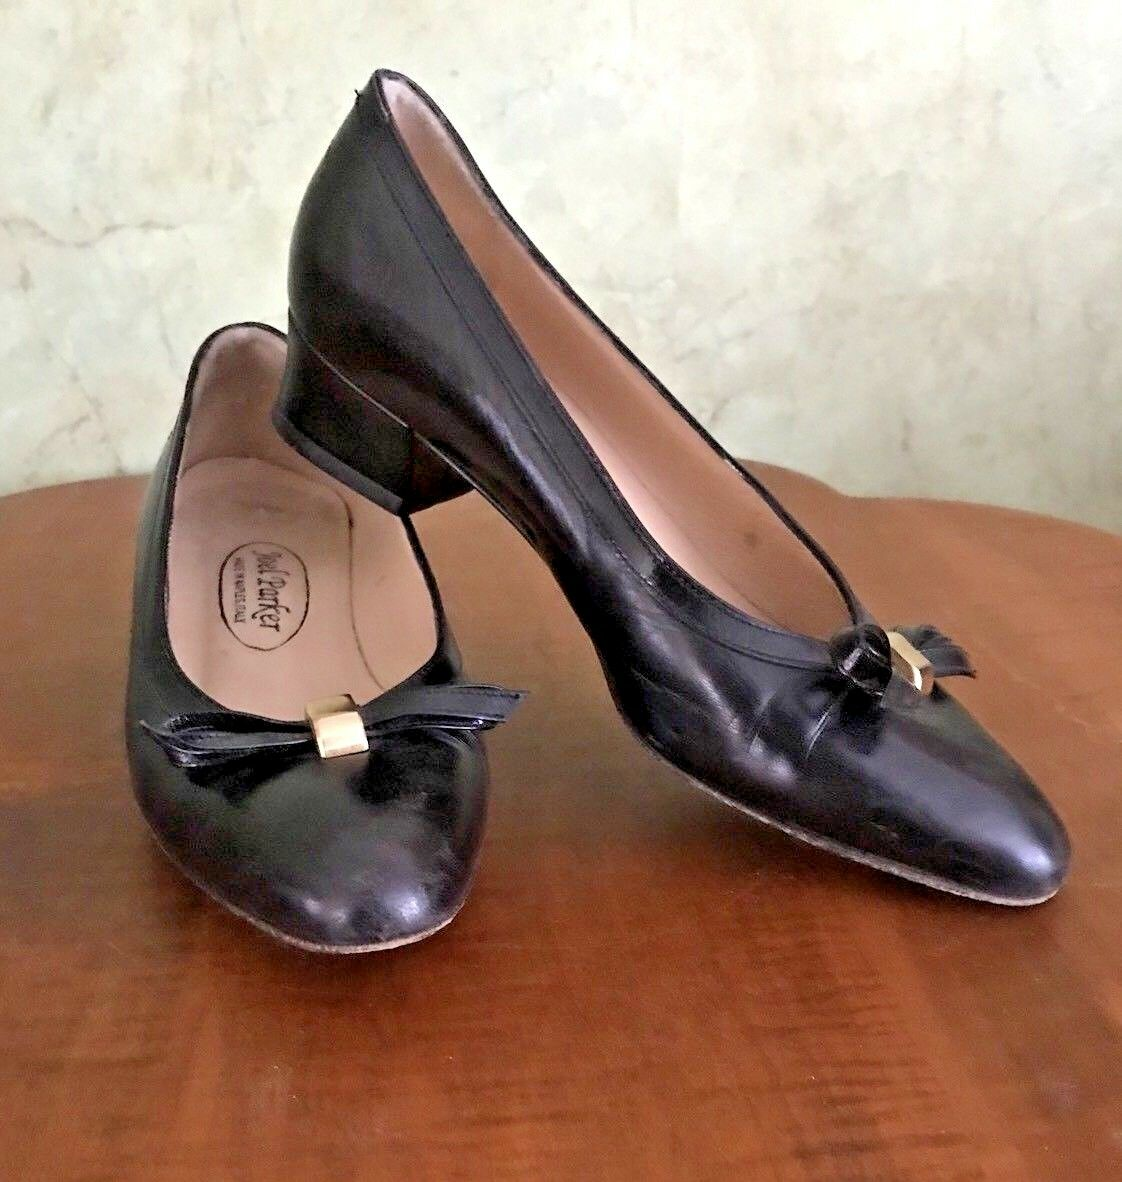 Vintage Joel Parker Made Leather in Naples, Italy BLACK Leather Made Pumps w/ Bow size 5.5 B 7d75df